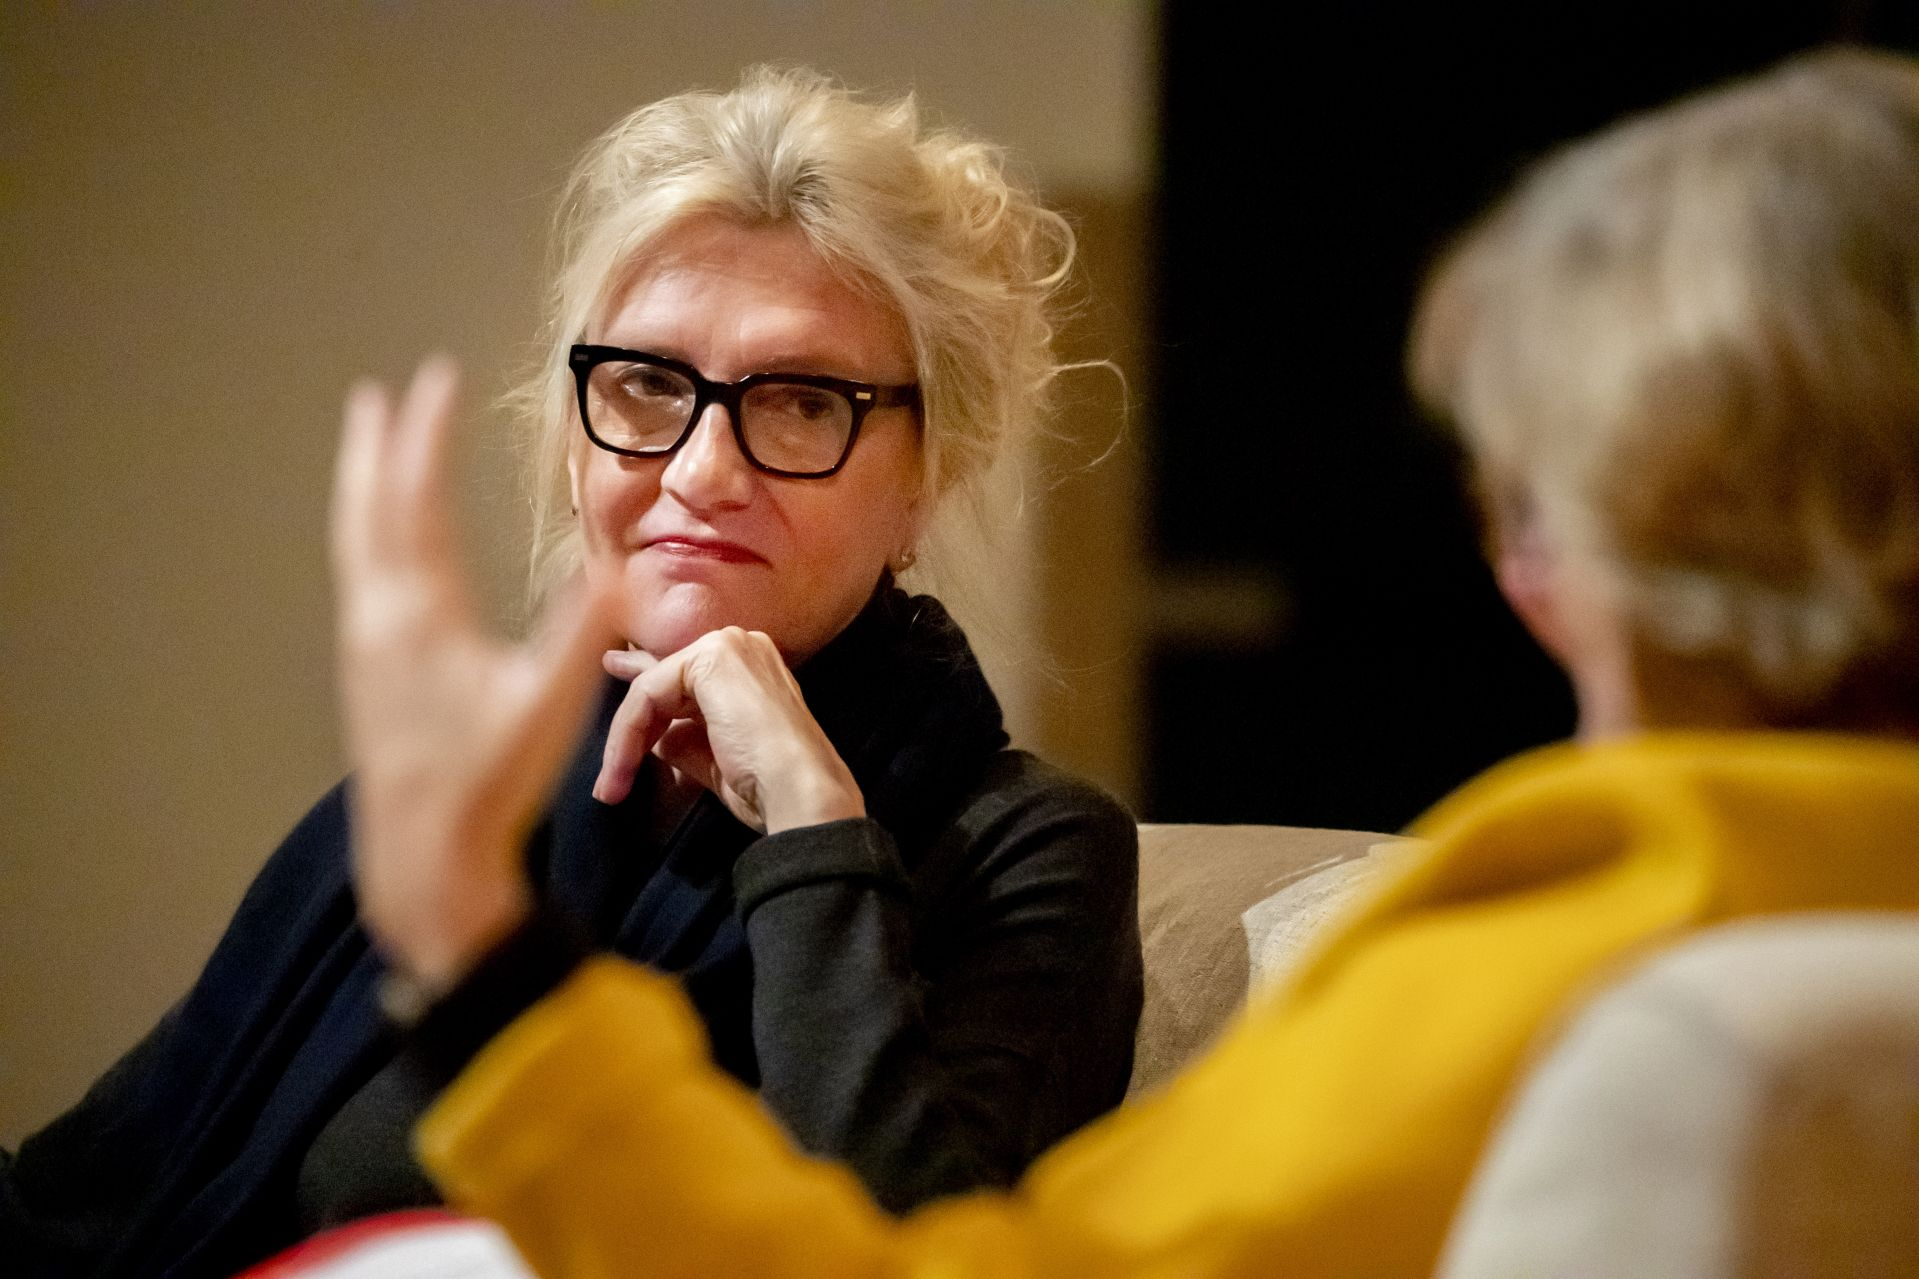 """Bestselling author Elizabeth Strout '77 says good night to Hermione Zhou '21 of Shenzhen, China, after signing Zhou's copy of """"Olive, Again"""" (Random House 2019), Strout's latest novel. A sequel to the Pulizer Prize-winning """"Olive Kitteridge,"""" """"Olive, Again"""" revisits an unforgettable cast of characters in fictional Crosby, Maine. Strout participated in a reading and conversation with Bates President Clayton Spencer, then signed books and spoke with a long line of admirers. Among Strout's family and friends in attendance was Governor of Maine Janet Mills."""